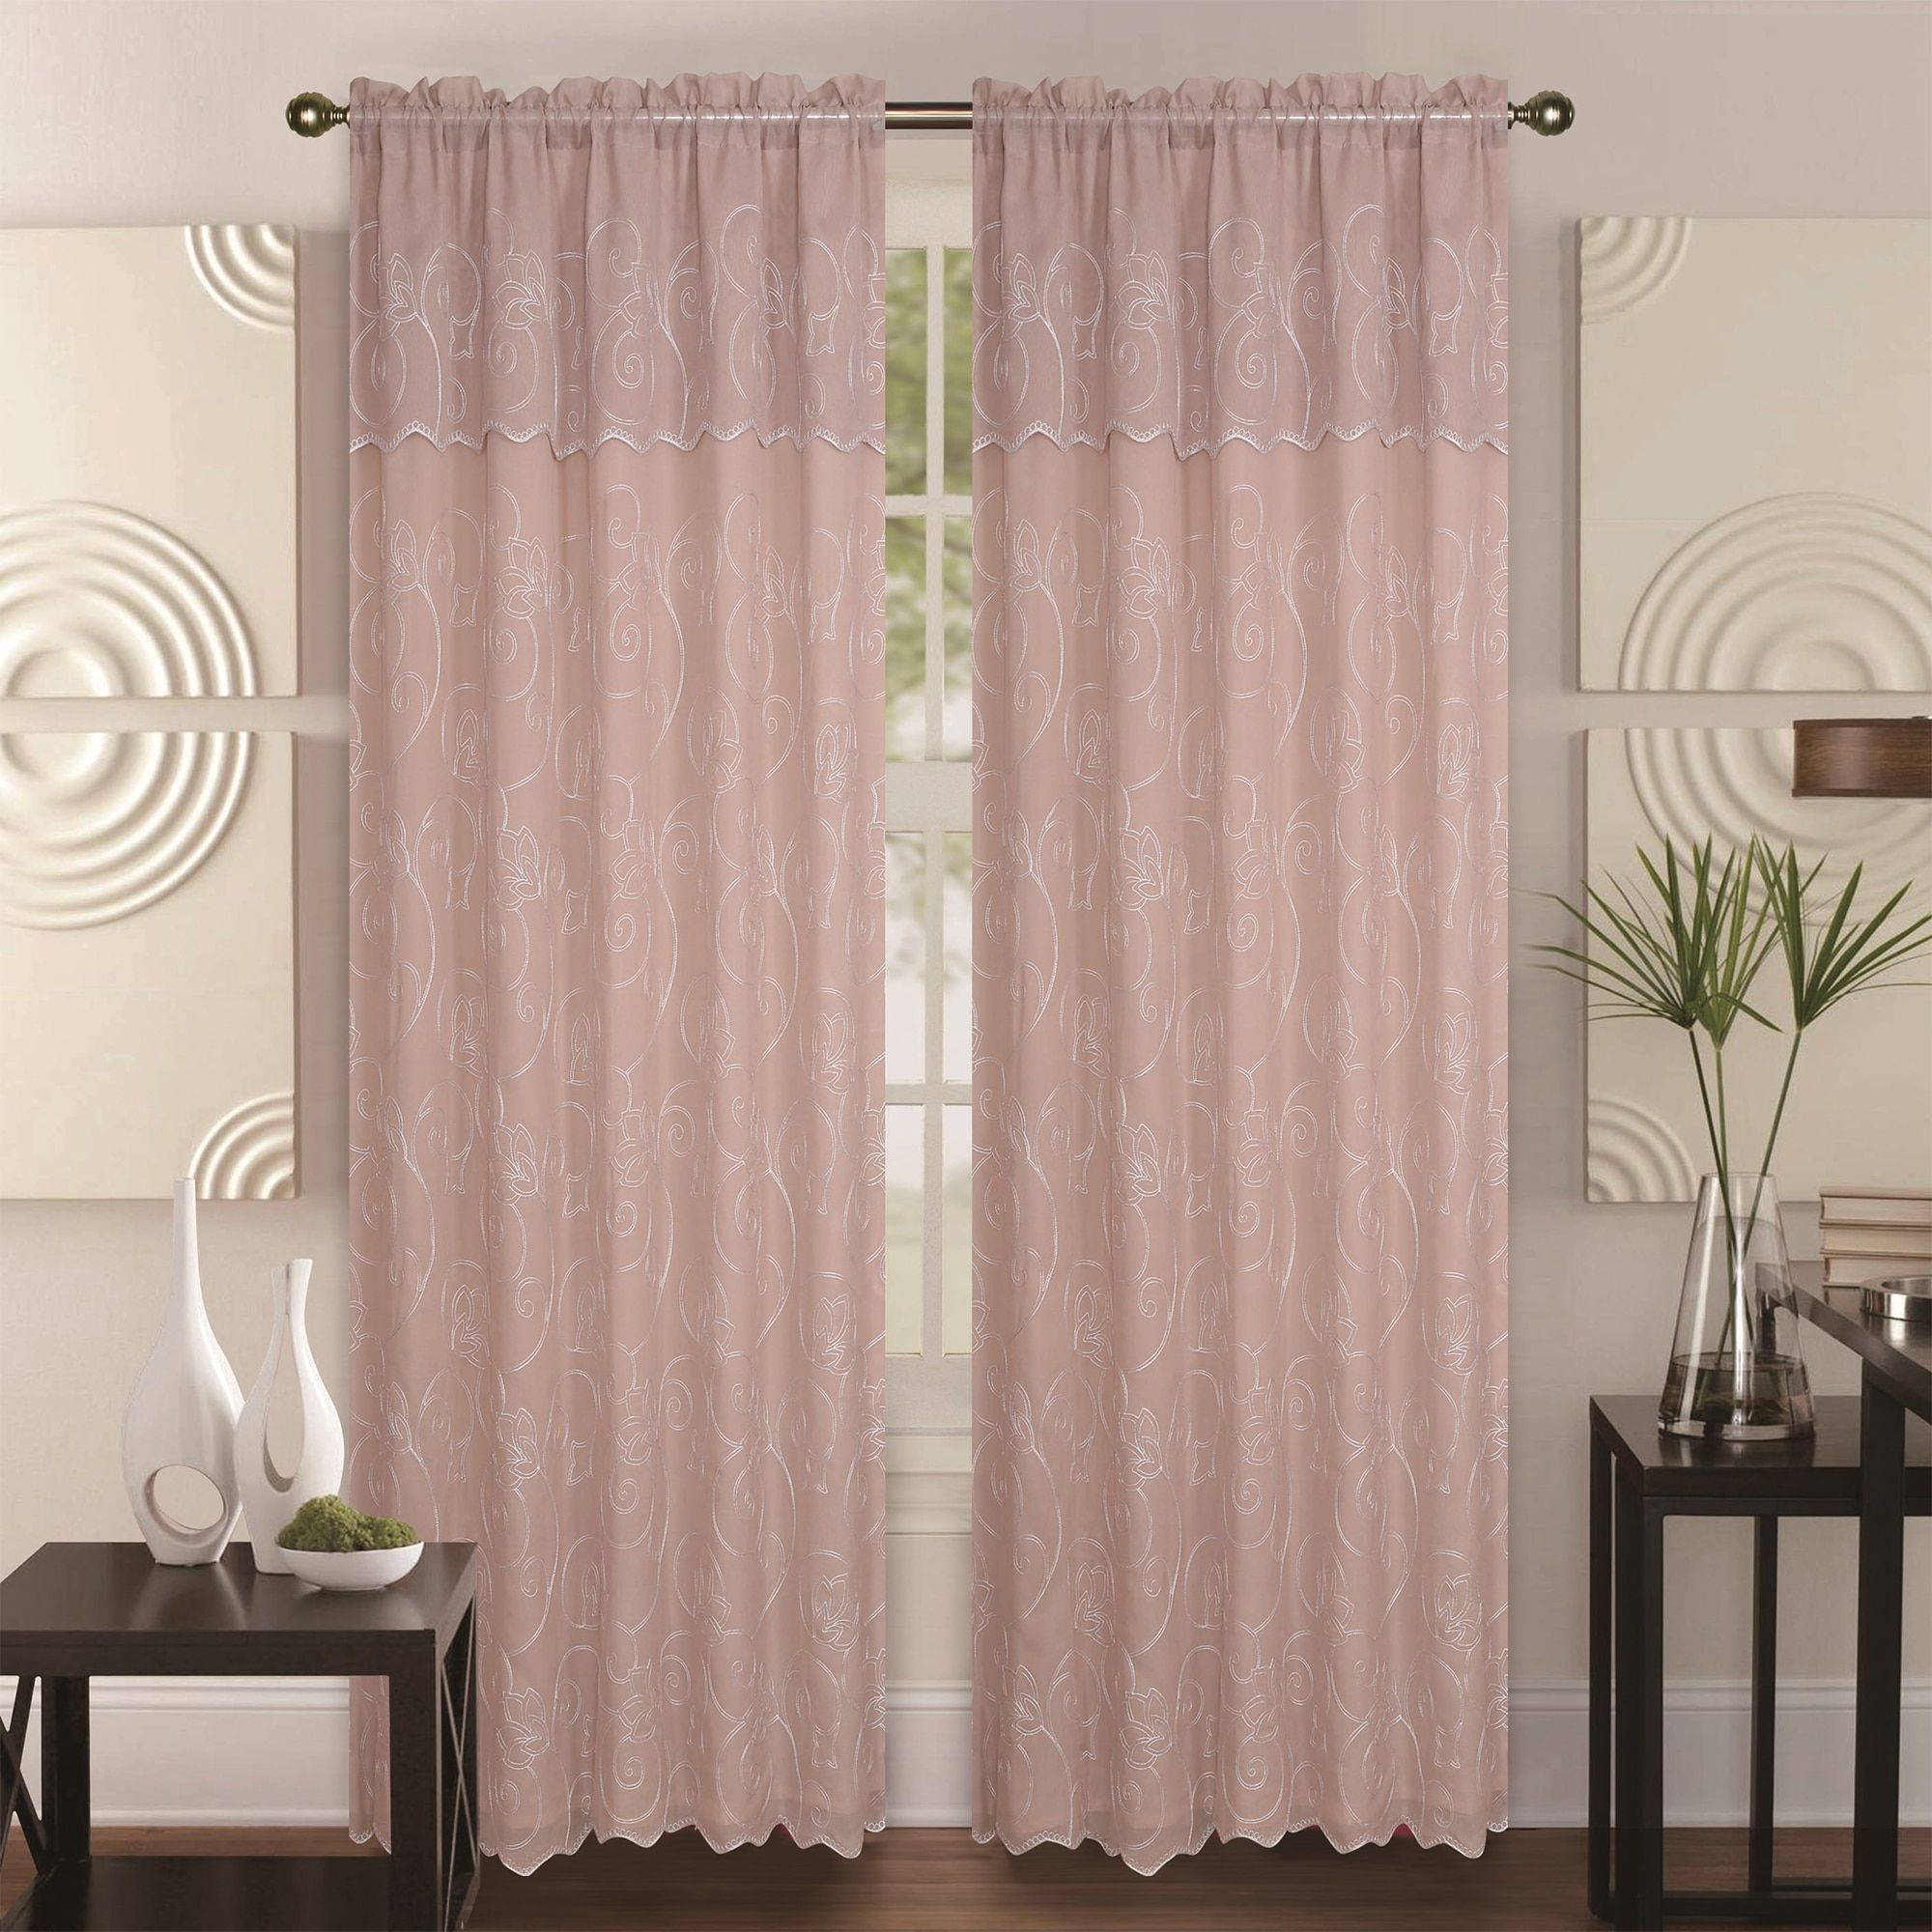 Double Layer Embroidery Floral Sheer Linen Front / Faux Silk In Ofloral Embroidered Faux Silk Window Curtain Panels (View 13 of 20)